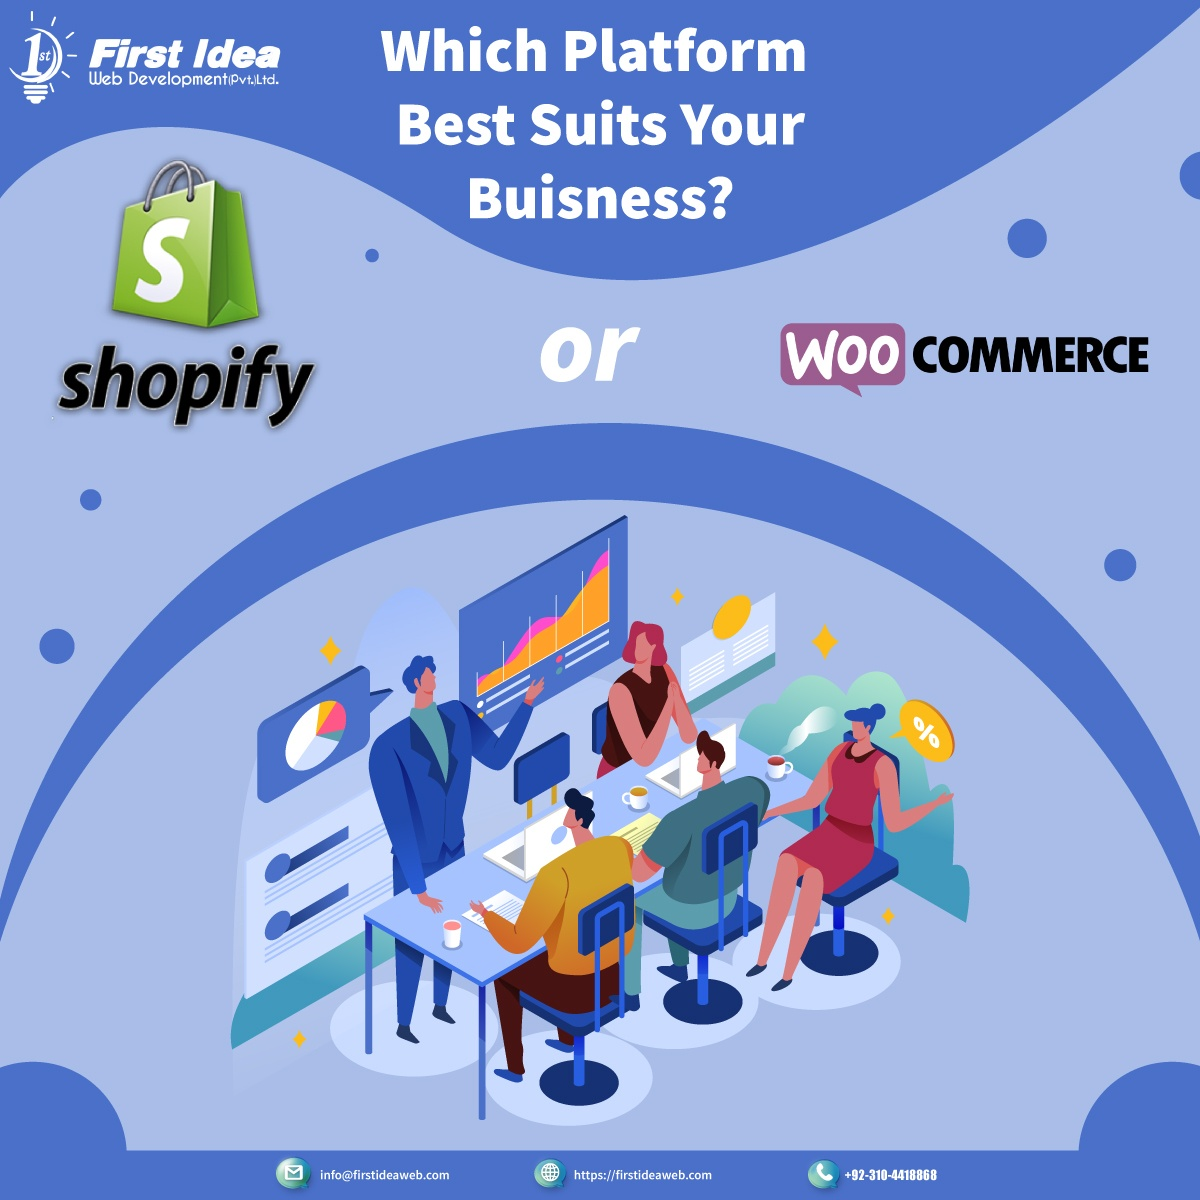 shopify vs wordpress, Shopify vs. WooCommerce, How to Build a Website, Which Is Right for Your Small Business?, which platform is best for you?